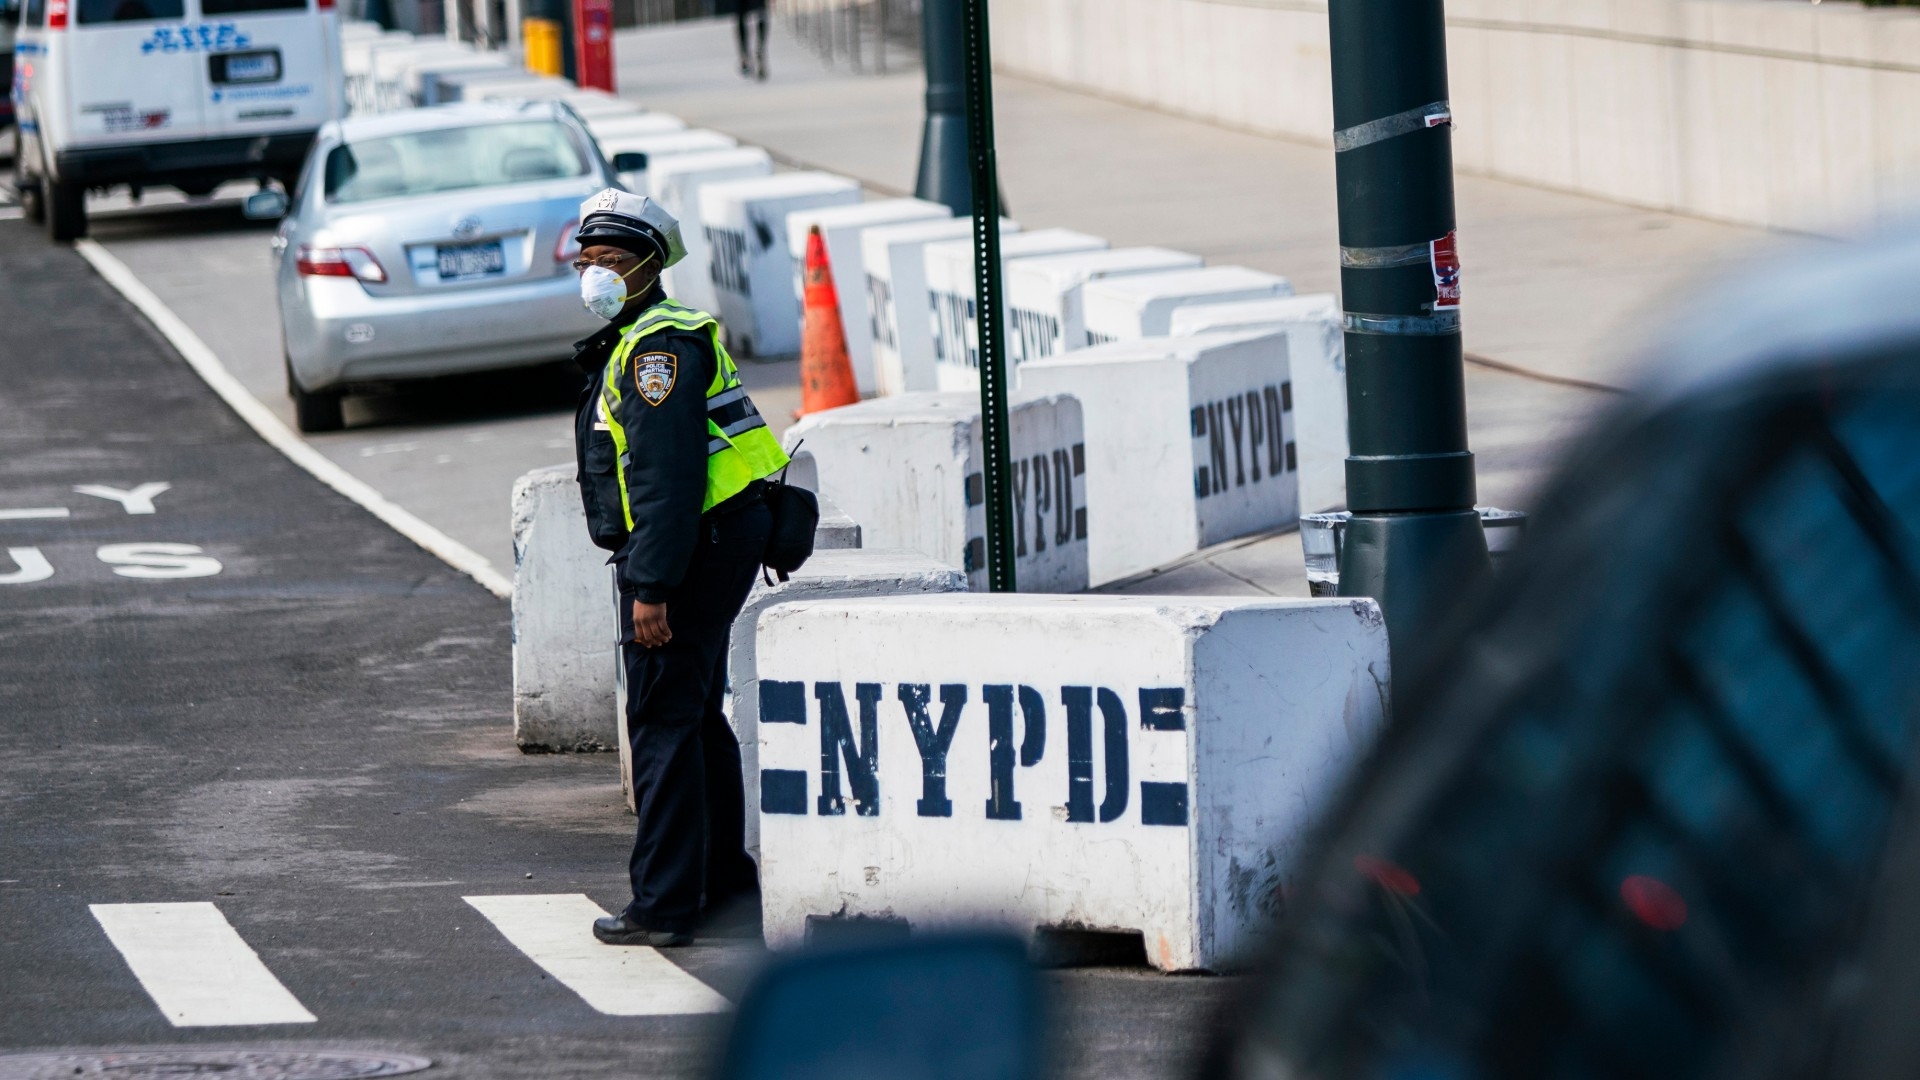 A New York Police officer wears a face mask as he directs traffic on a local street on March 27, 2020, in New York City. (Eduardo Munoz Alvarez/Getty Images)